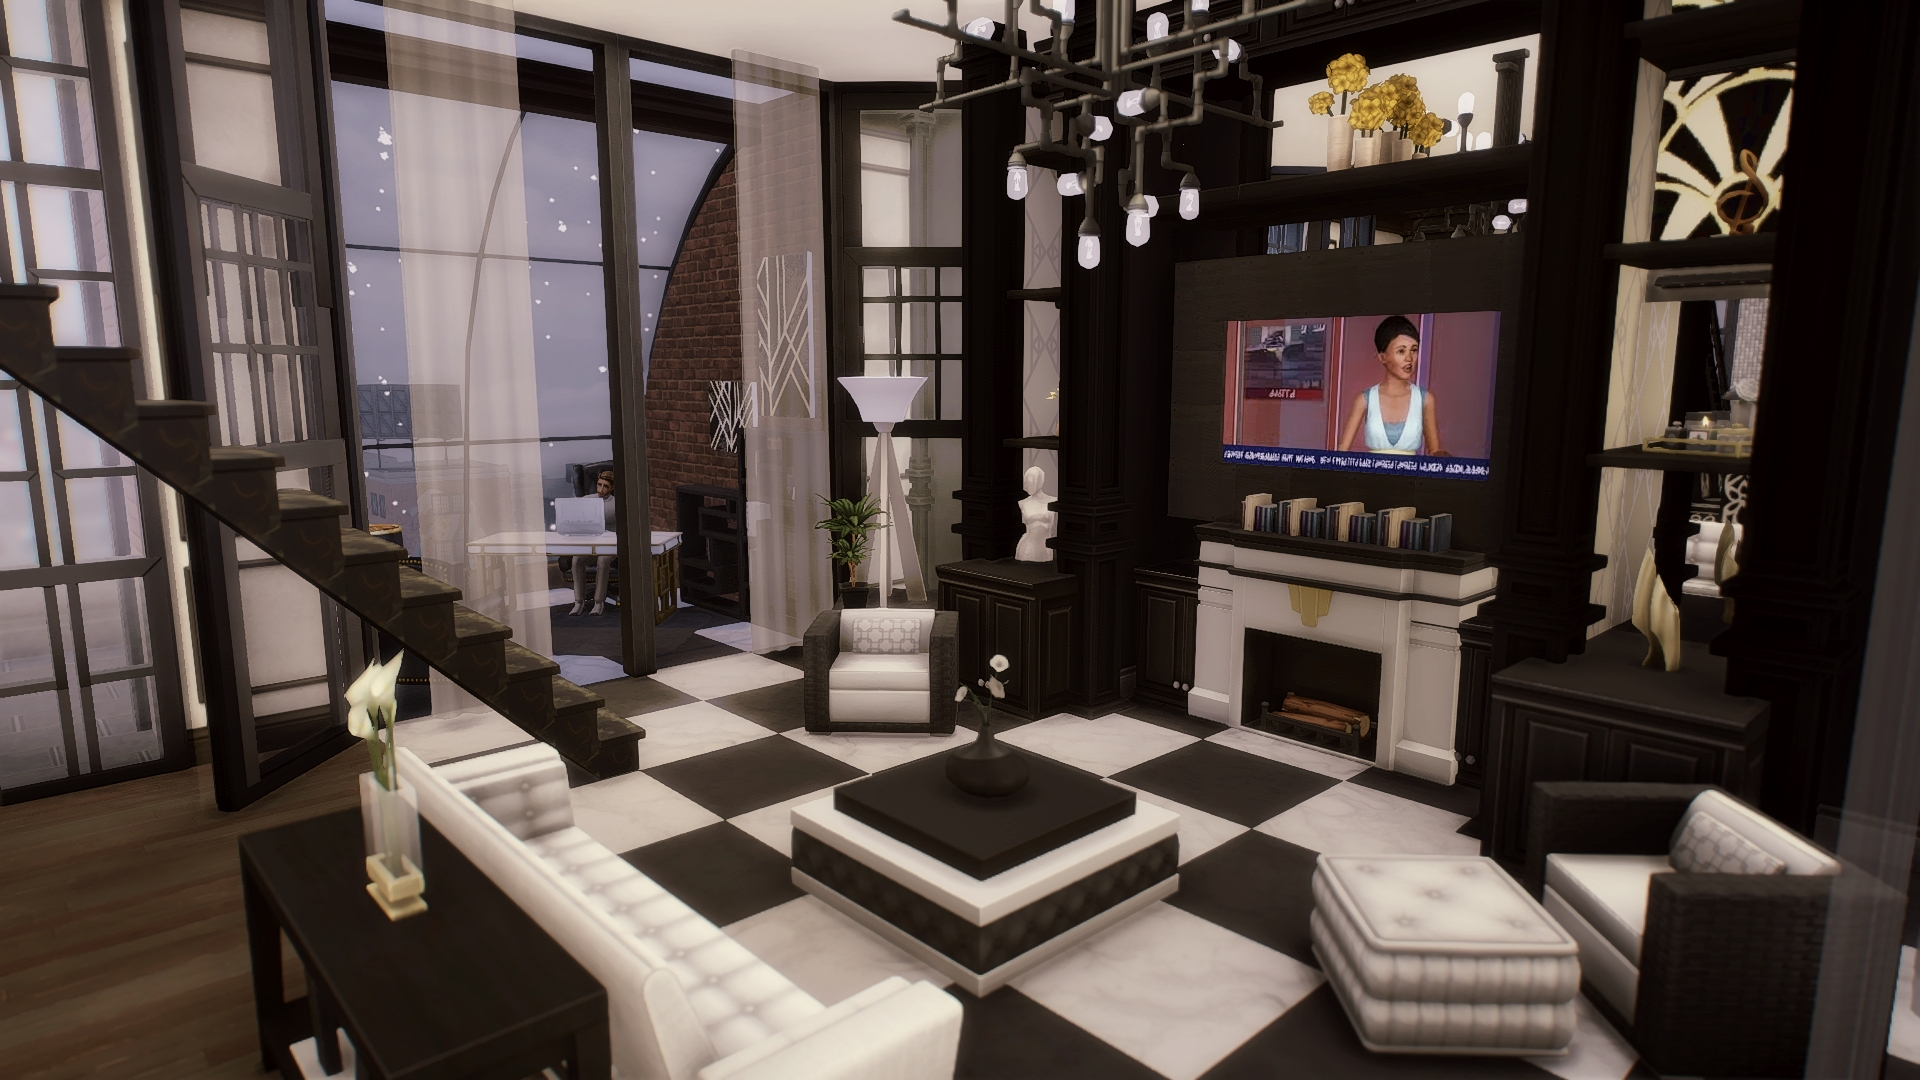 The No Cc Living Room From My Art Deco Penthouse Wip : Thesims 40+ Sims 4 Living Room No Cc Inspirations